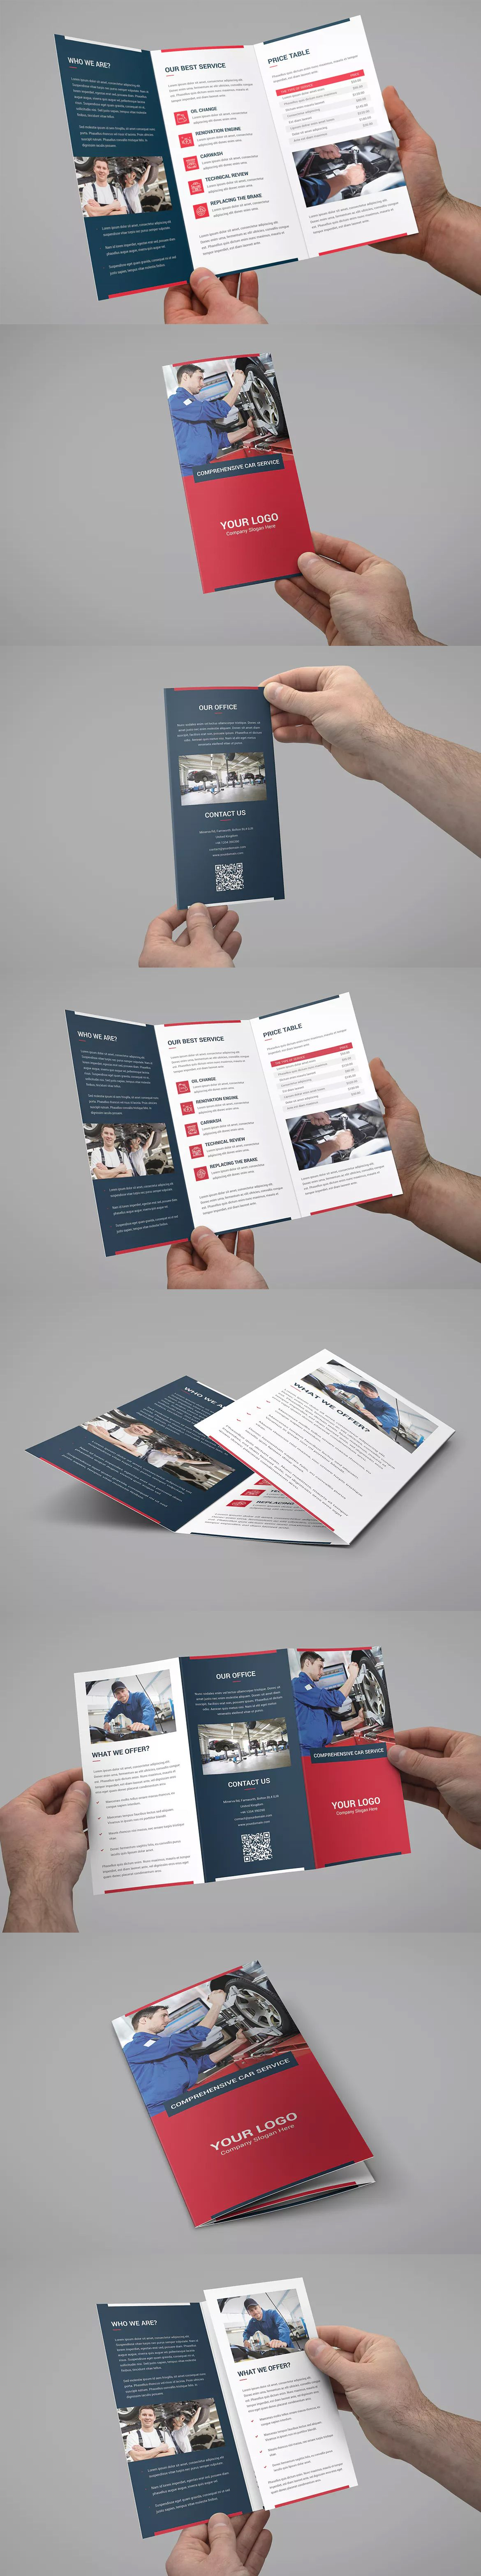 auto repair tri fold brochure template psd a4 and us letter size